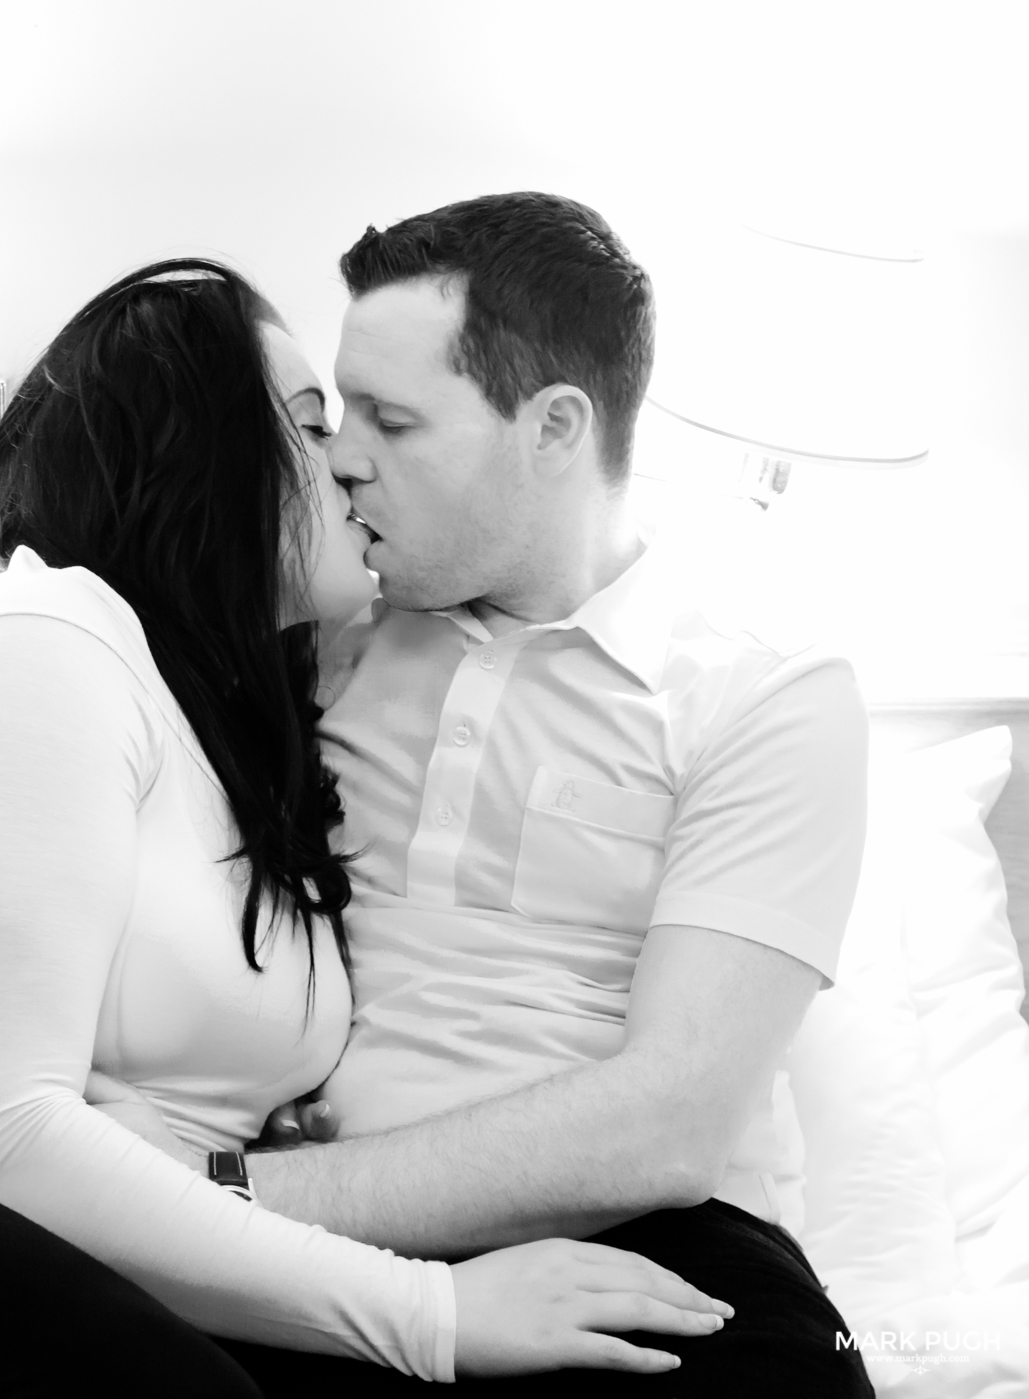 052 - Louise and Paul - preWED love session at the seaside - Photography by www.markpugh.com.JPG